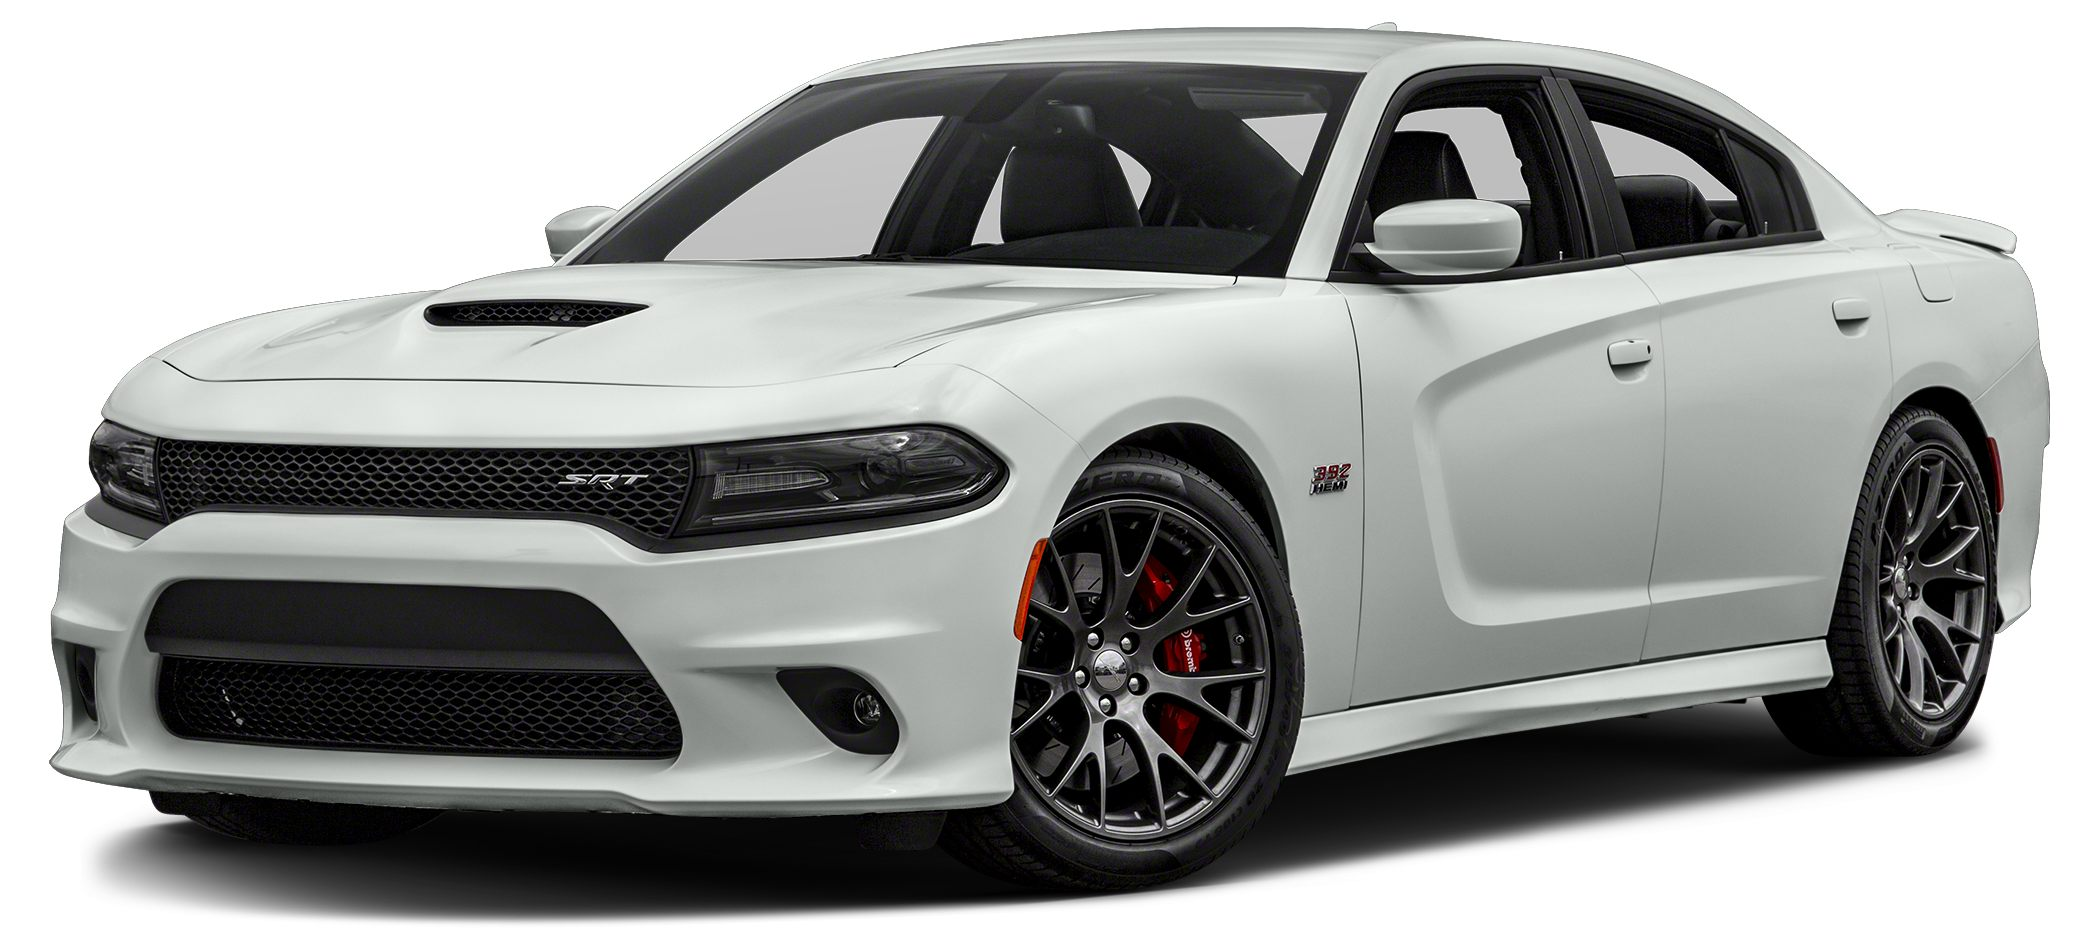 2016 Dodge Charger SRT 392 Color Bright White Clearcoat Stock GH293124 VIN 2C3CDXEJ3GH293124